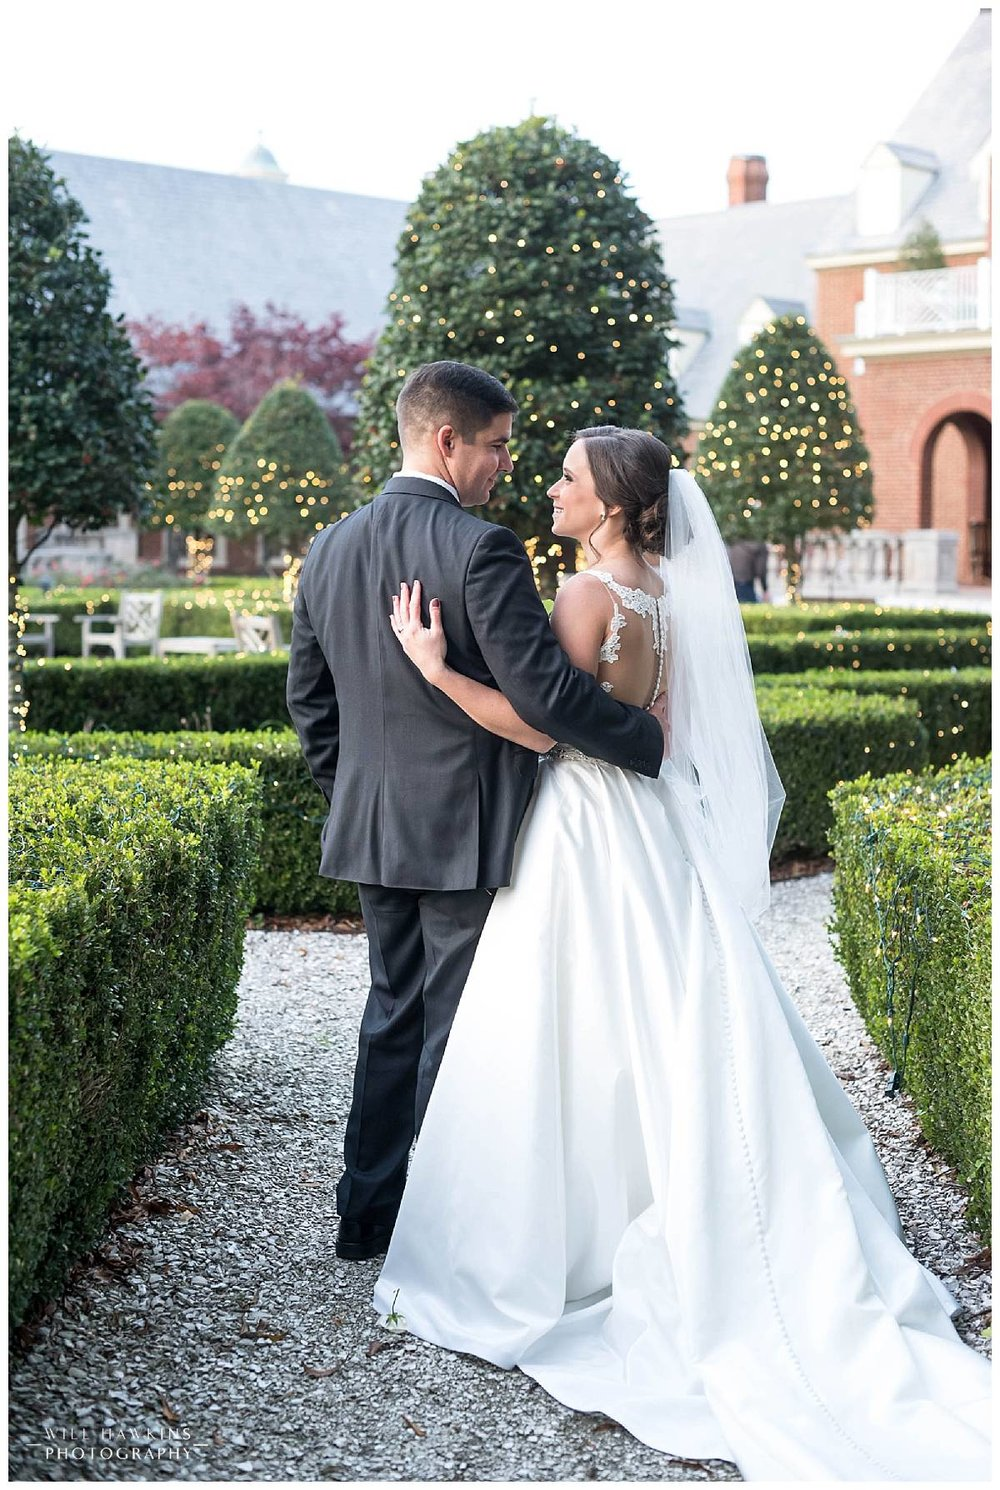 2018-01-24_0023.jpgVirginia Beach Wedding Photographer Virginia Wedding Photographer Will Hawkins Photography Founders Inn Wedding Virginia Beach Wedding